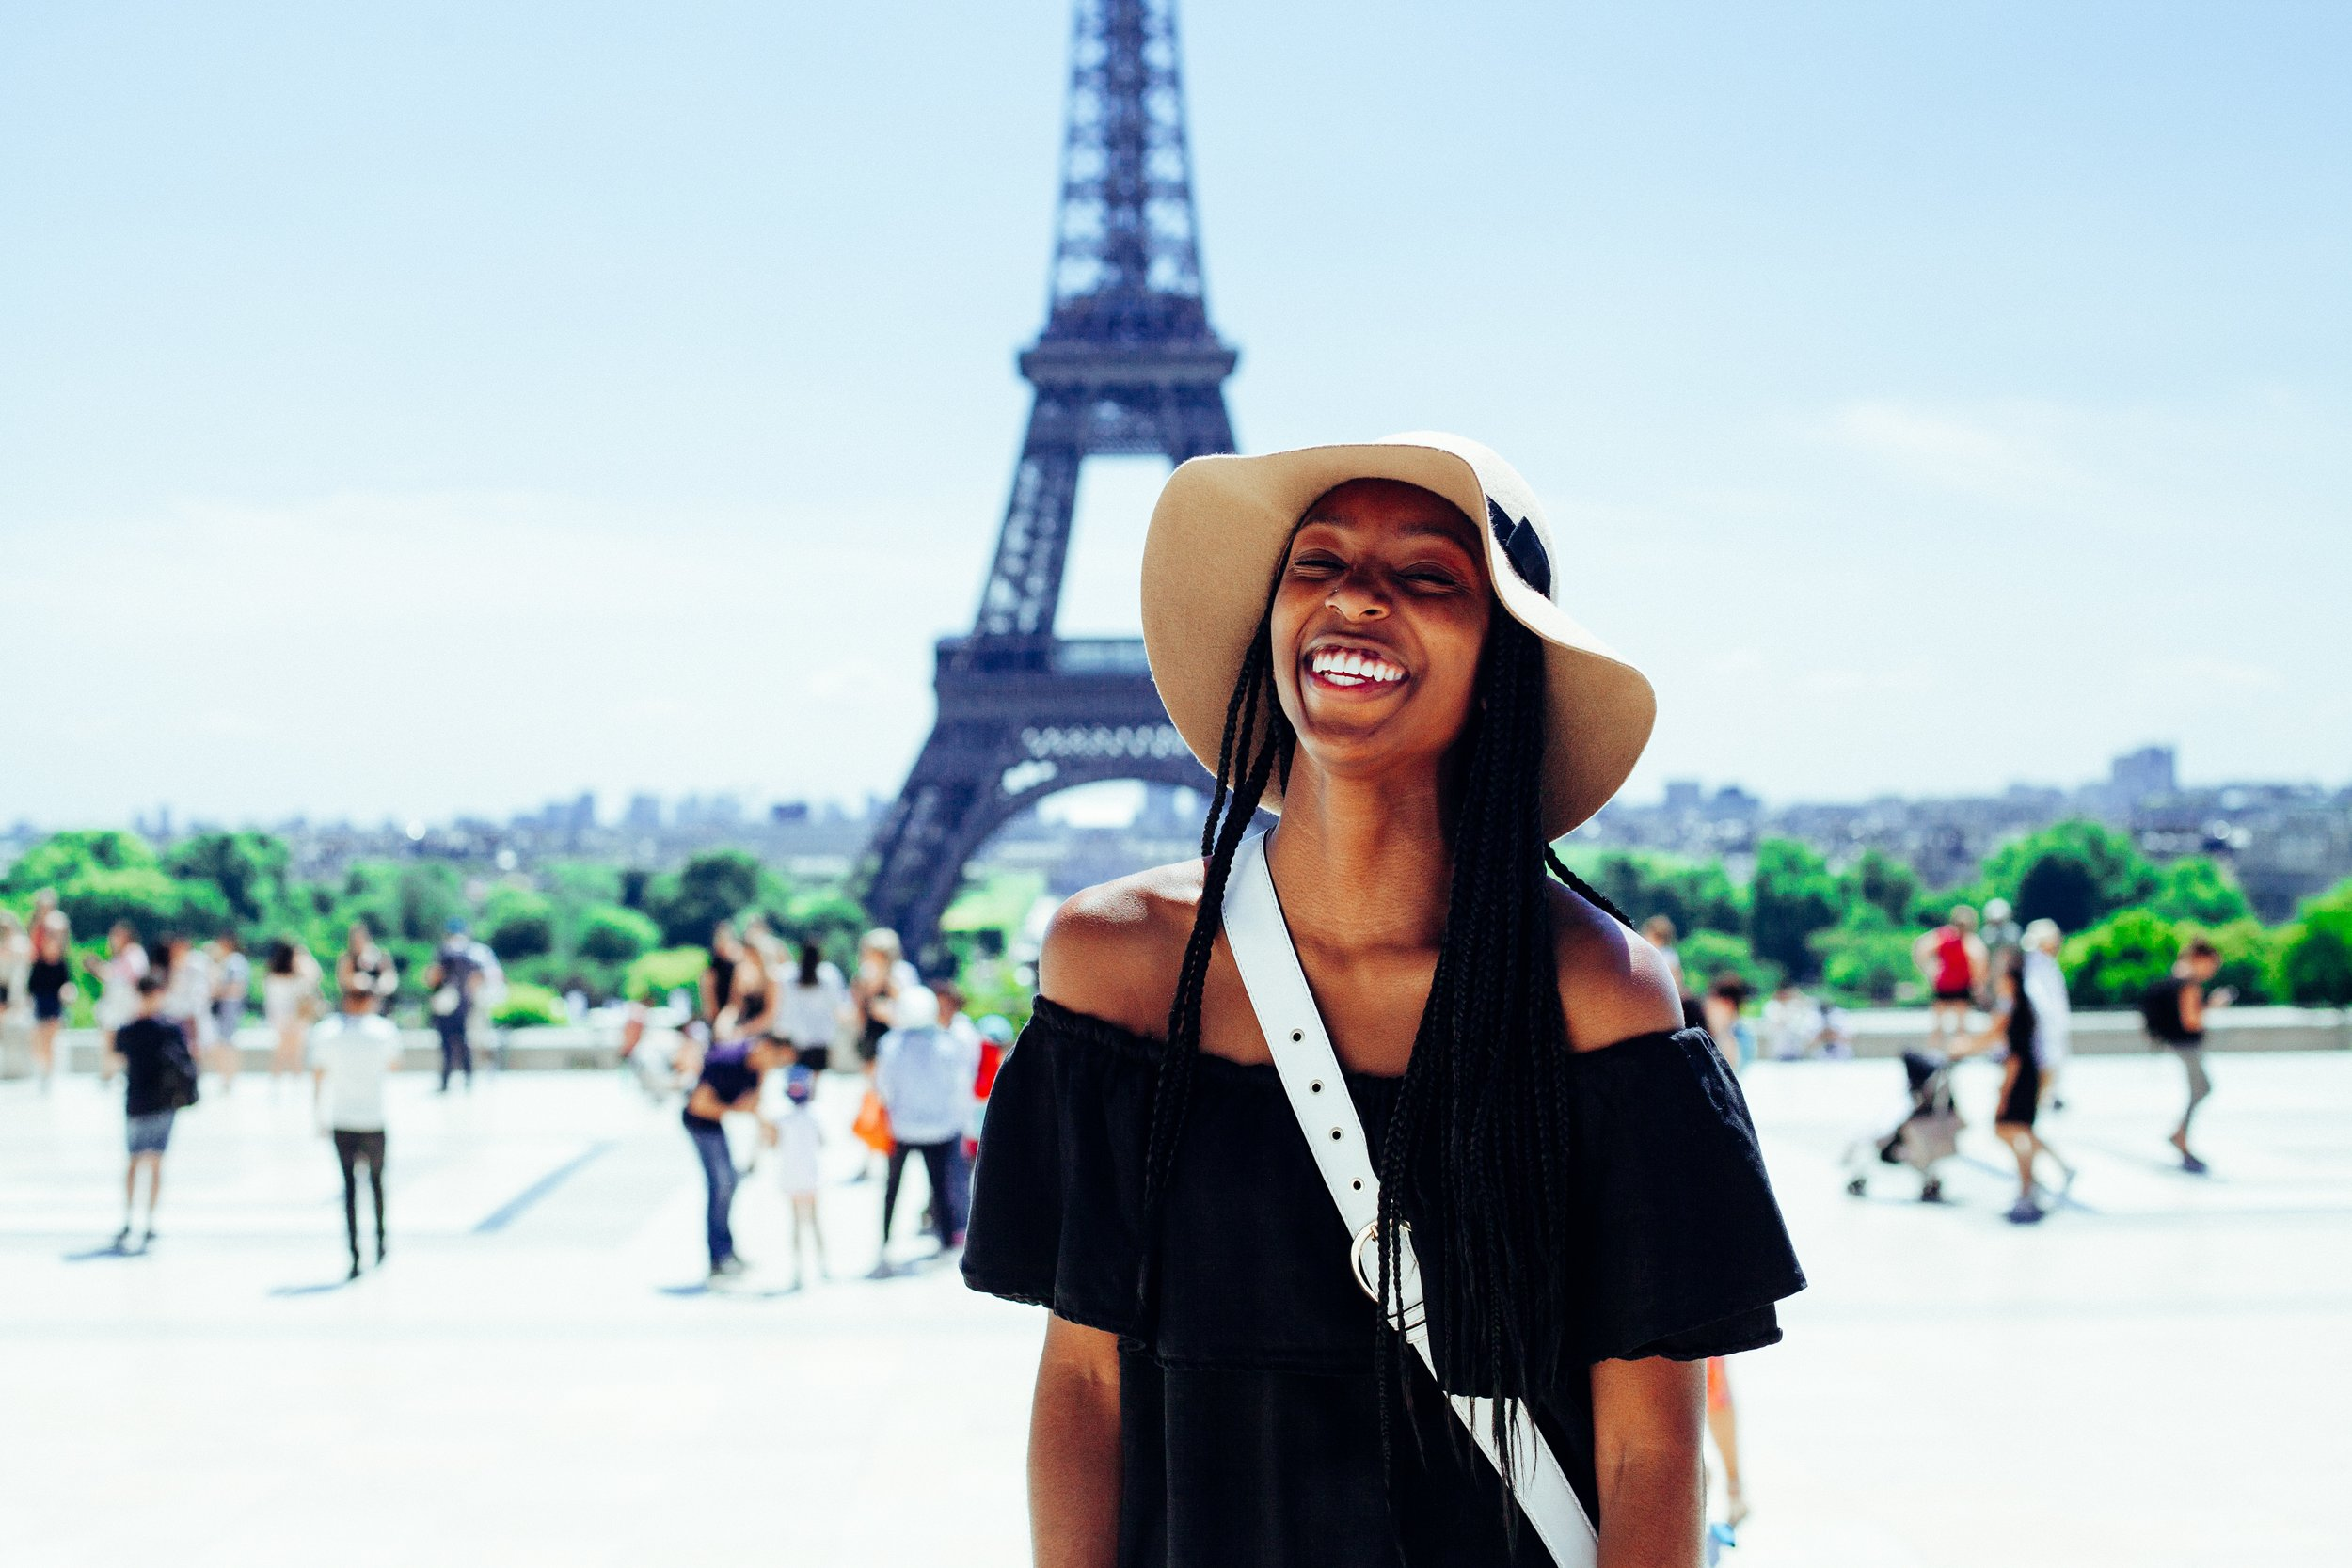 smiling woman in front of the eiffel tower